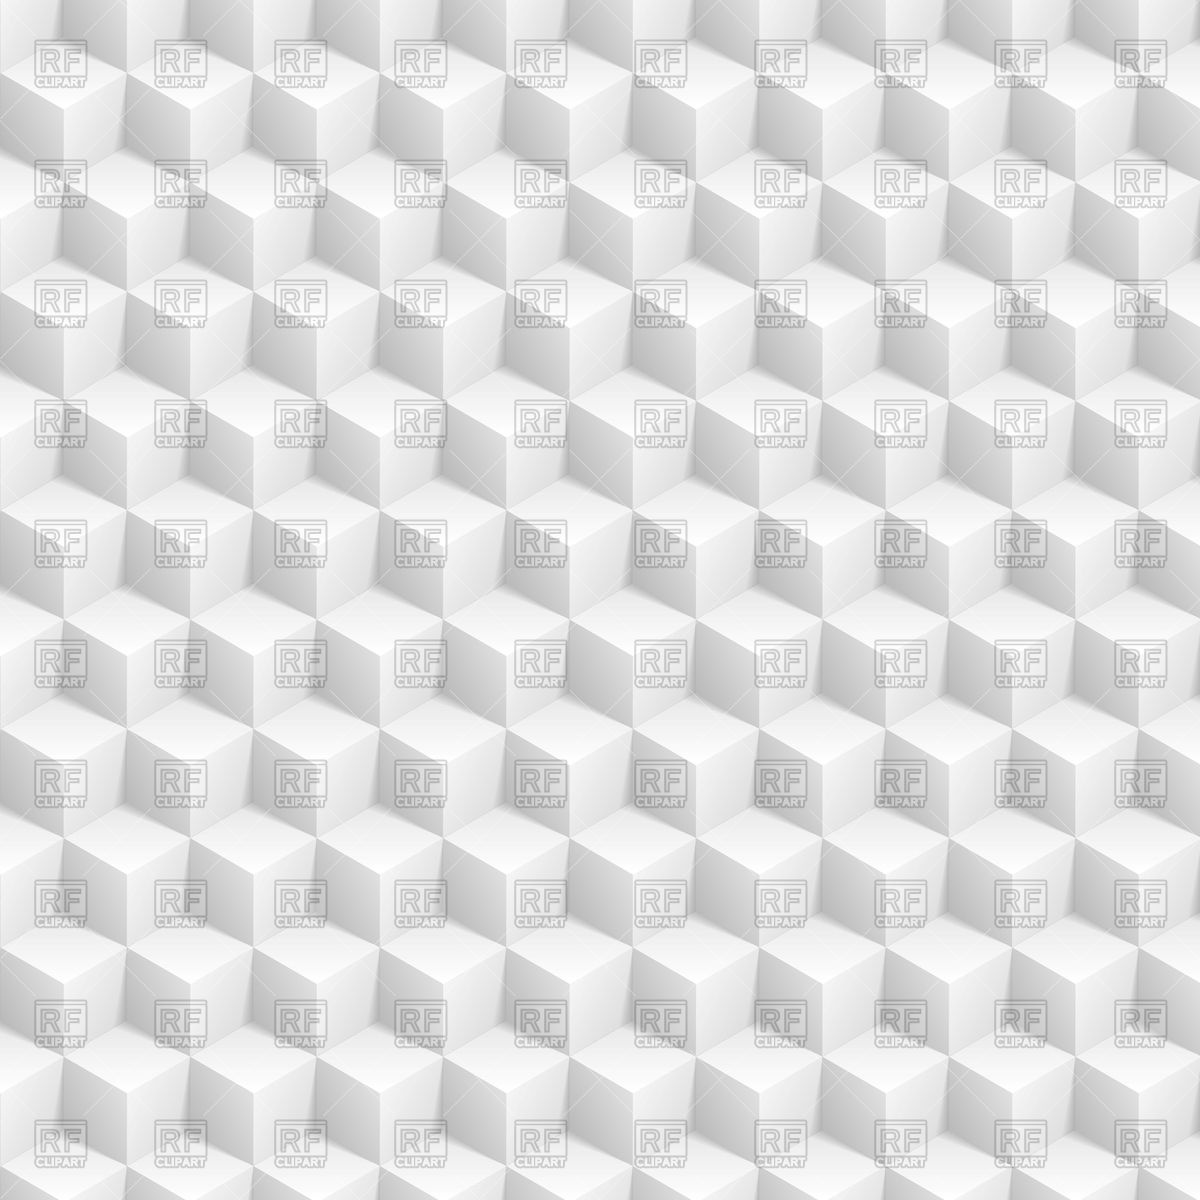 1200x1200 Grey Abstract 3d Cubes Pattern Vector Image Vector Artwork Of